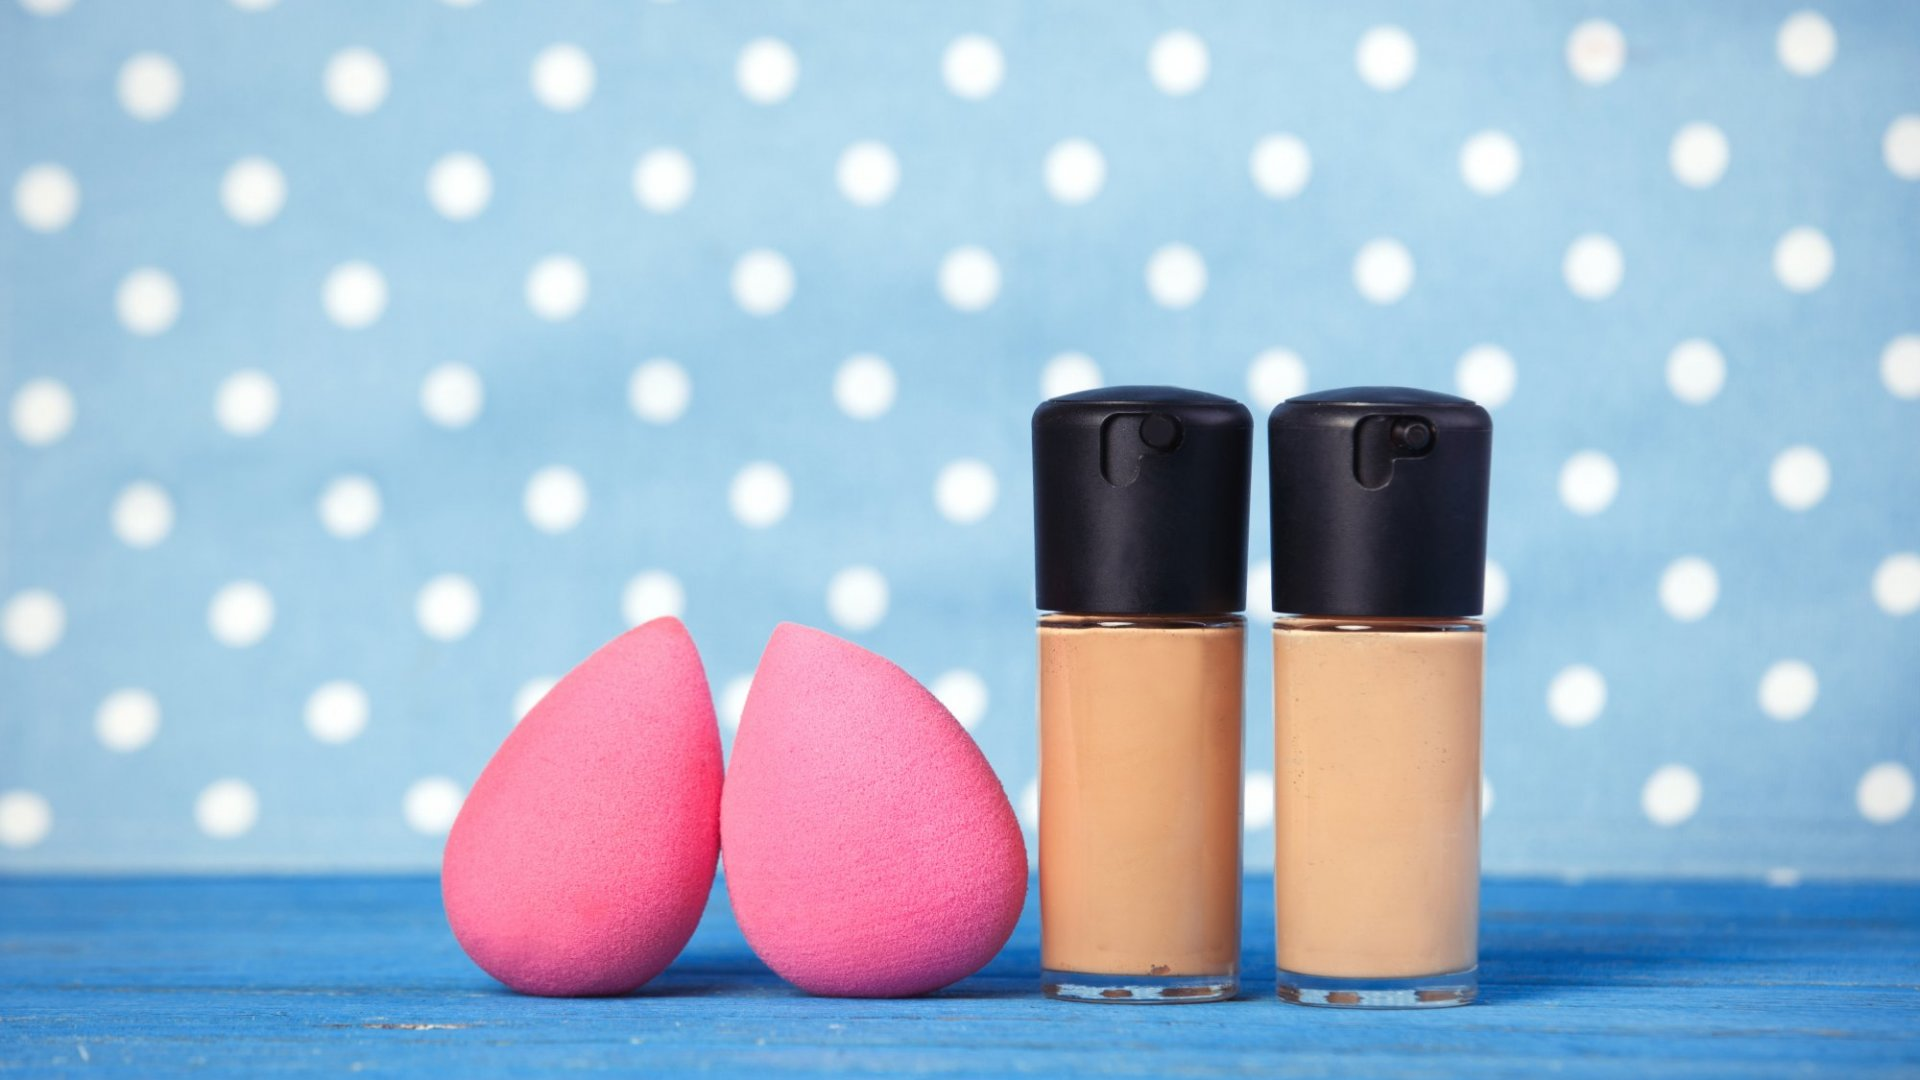 Boosting the Beauty Game: An Interview With Beautyblender Founder Rea Ann Silva